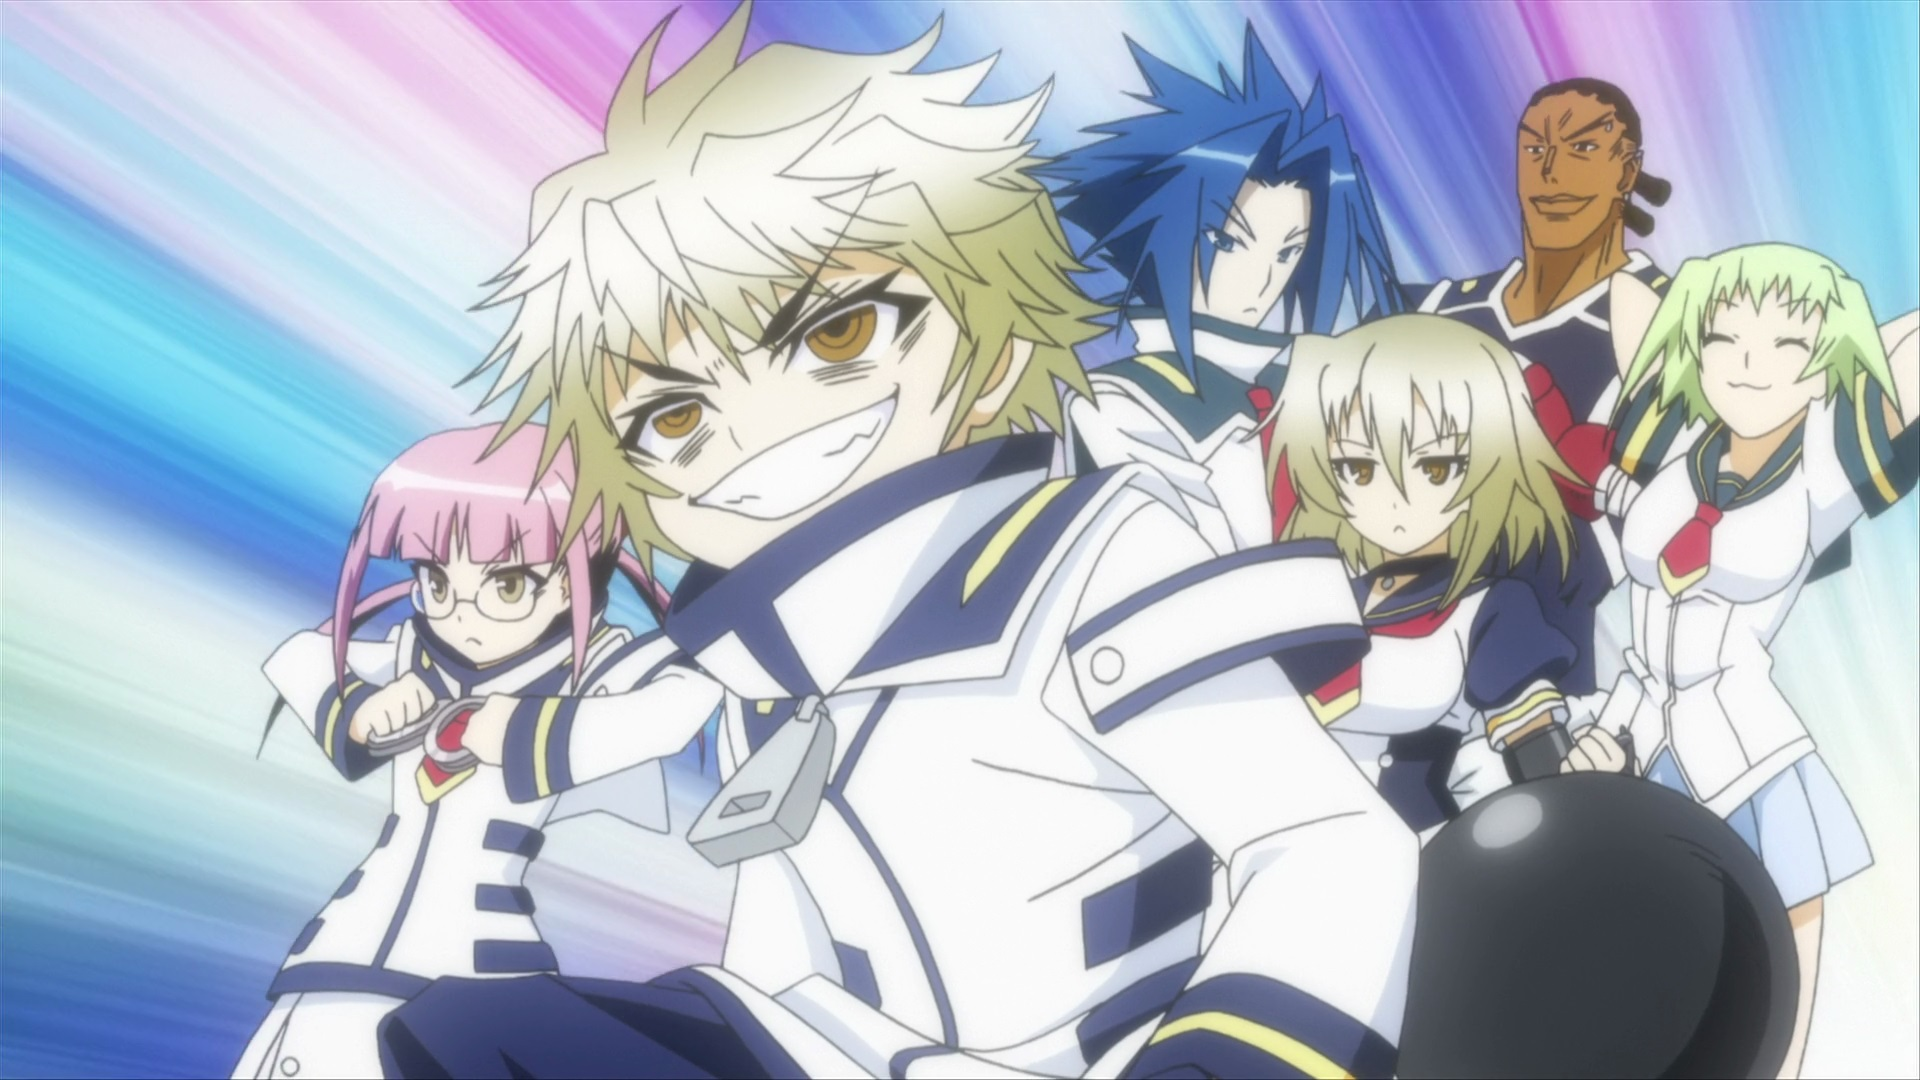 Medaka Box Images The Loser Team Hd Wallpaper And Background Photos